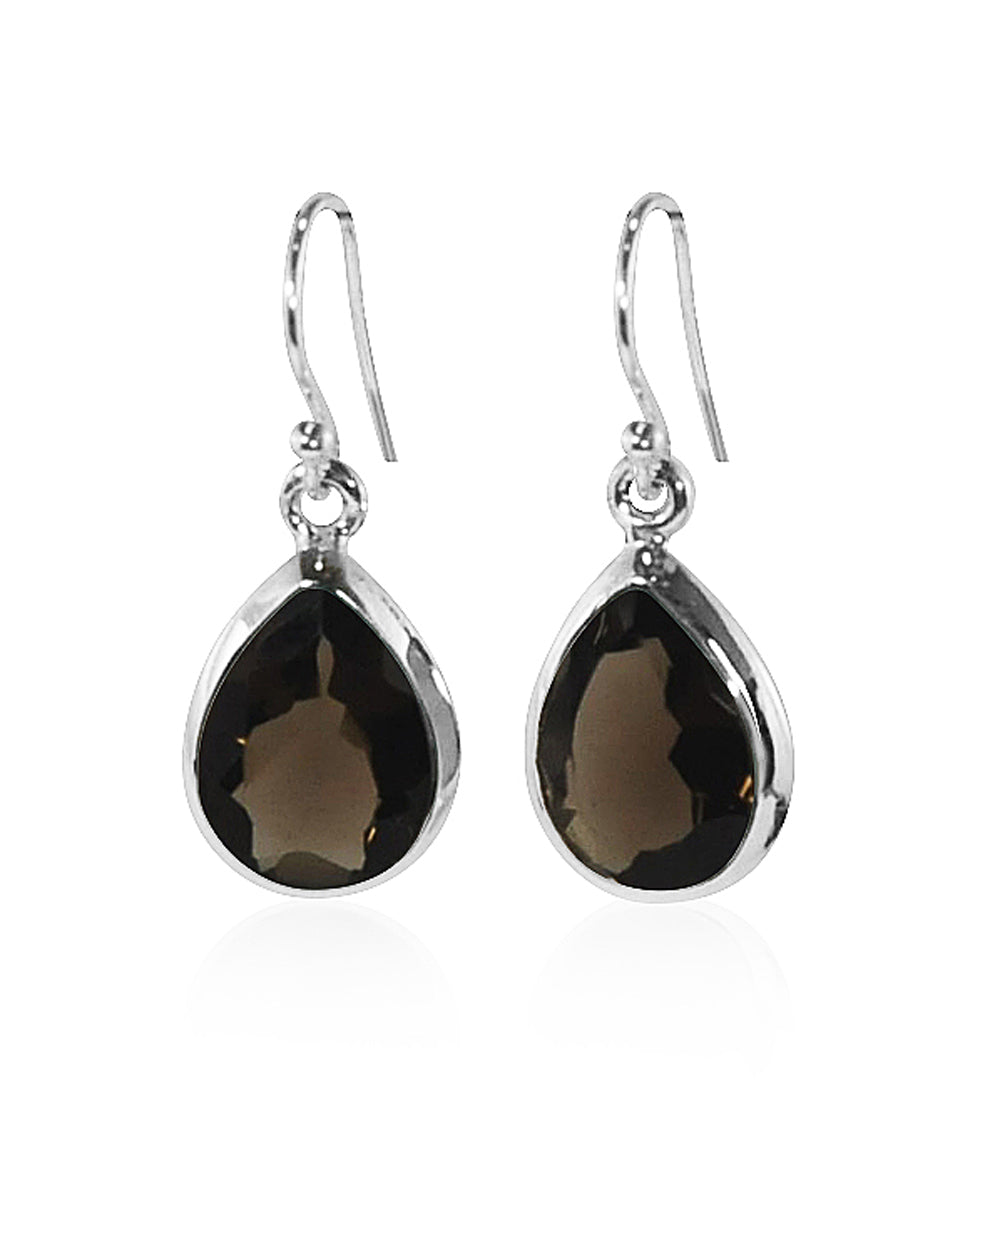 3.00 Ct Pear Cut Natural Smoky Quartz Earrings in Sterling Silver